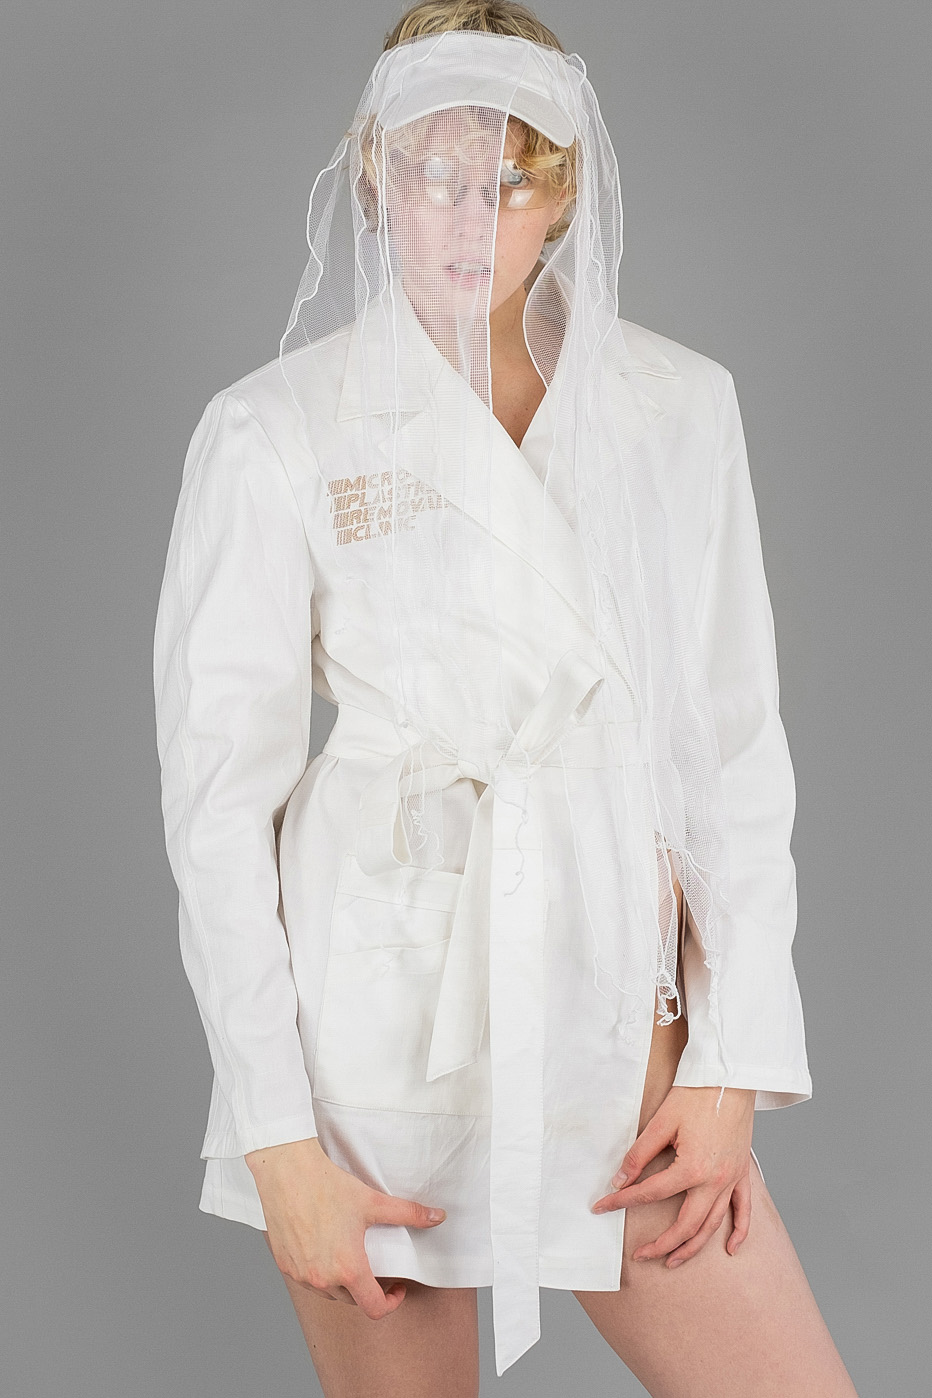 Removal Clinic Jacket 3